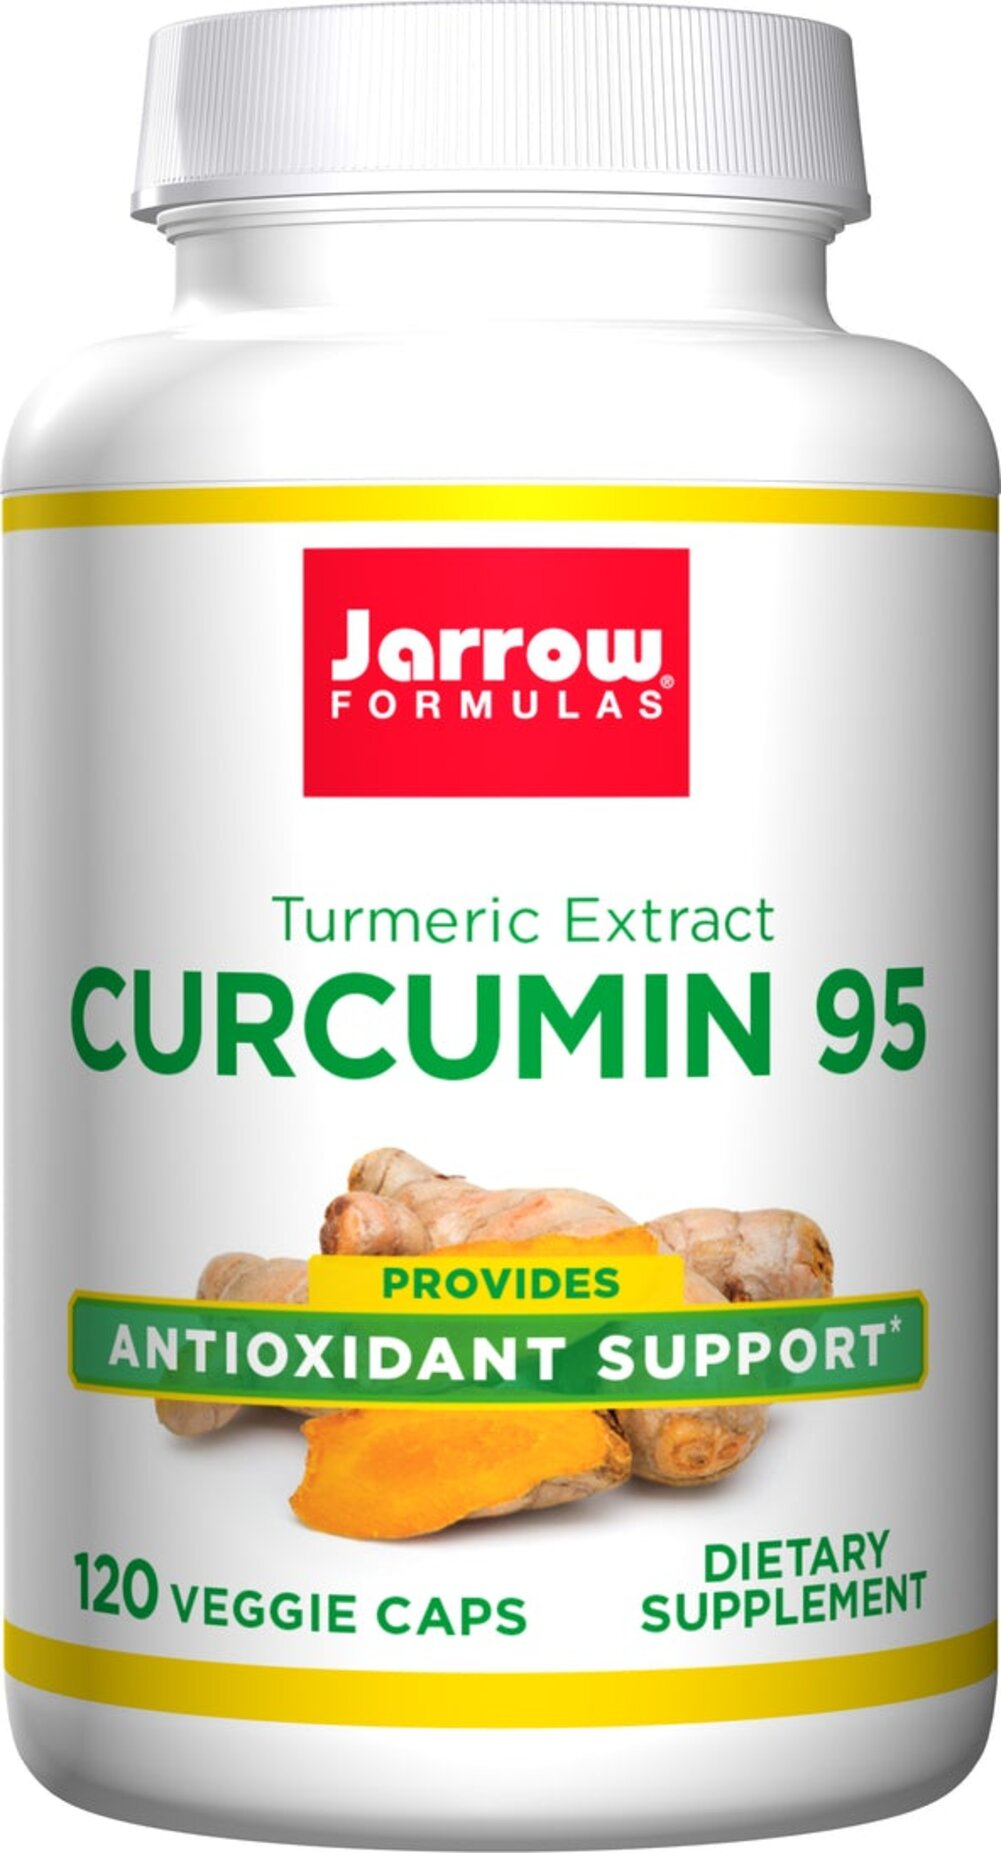 Curcumin 95™ 500 mg Curcumin 95™ is a concentrate of 95% curcuminoids, which are powerful antioxidants found in the spice turmeric root.  120 Capsules 500 mg $29.99